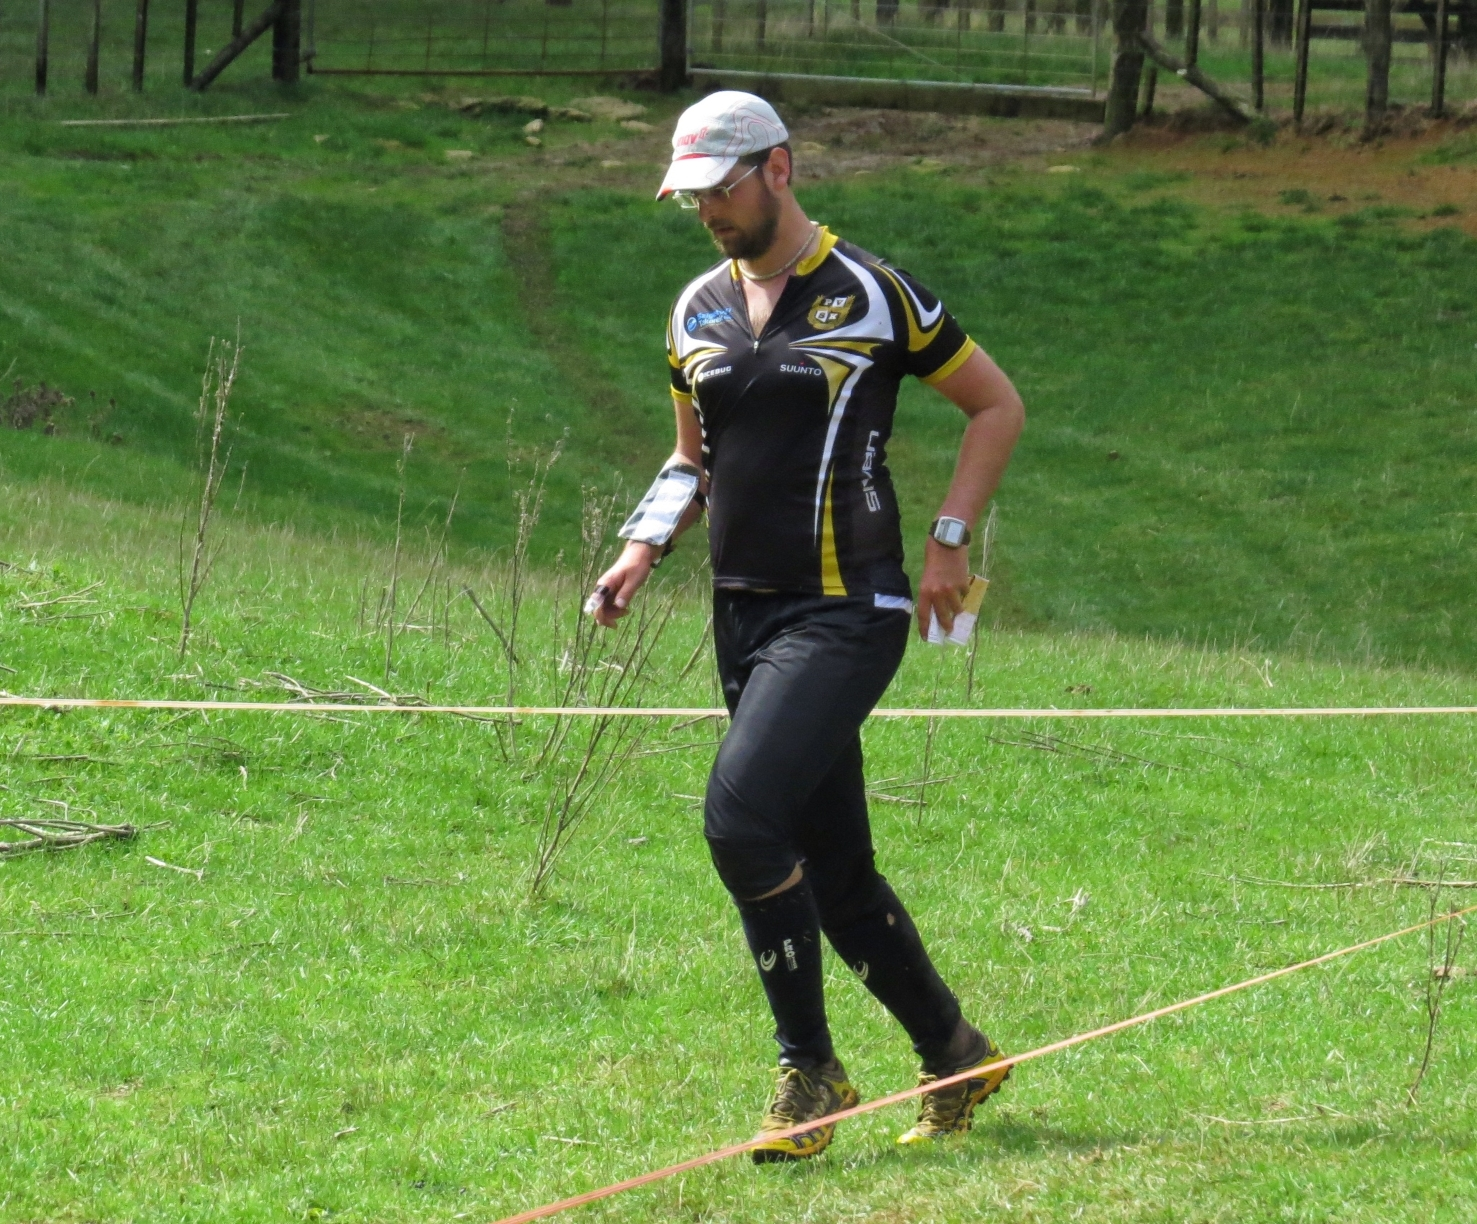 Gergo April 2015 - NZ Orienteering Champs, Long - Goat City, Onewhero